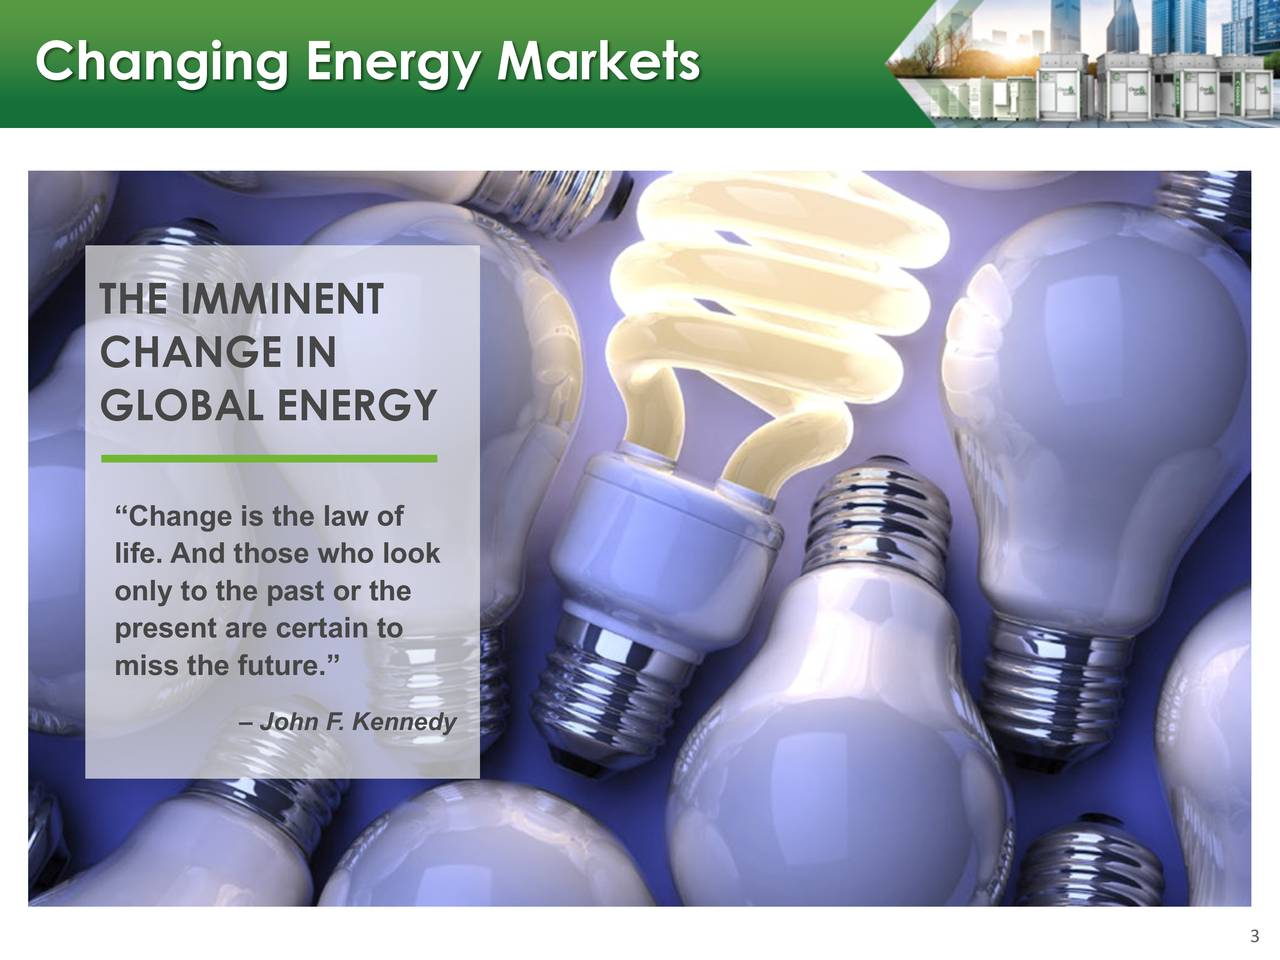 "THE IMMINENT CHANGE IN GLOBAL ENERGY ""Change is the law of life. And those who look only to the past or the present are certain to miss the future."" – John F. Kennedy 3"